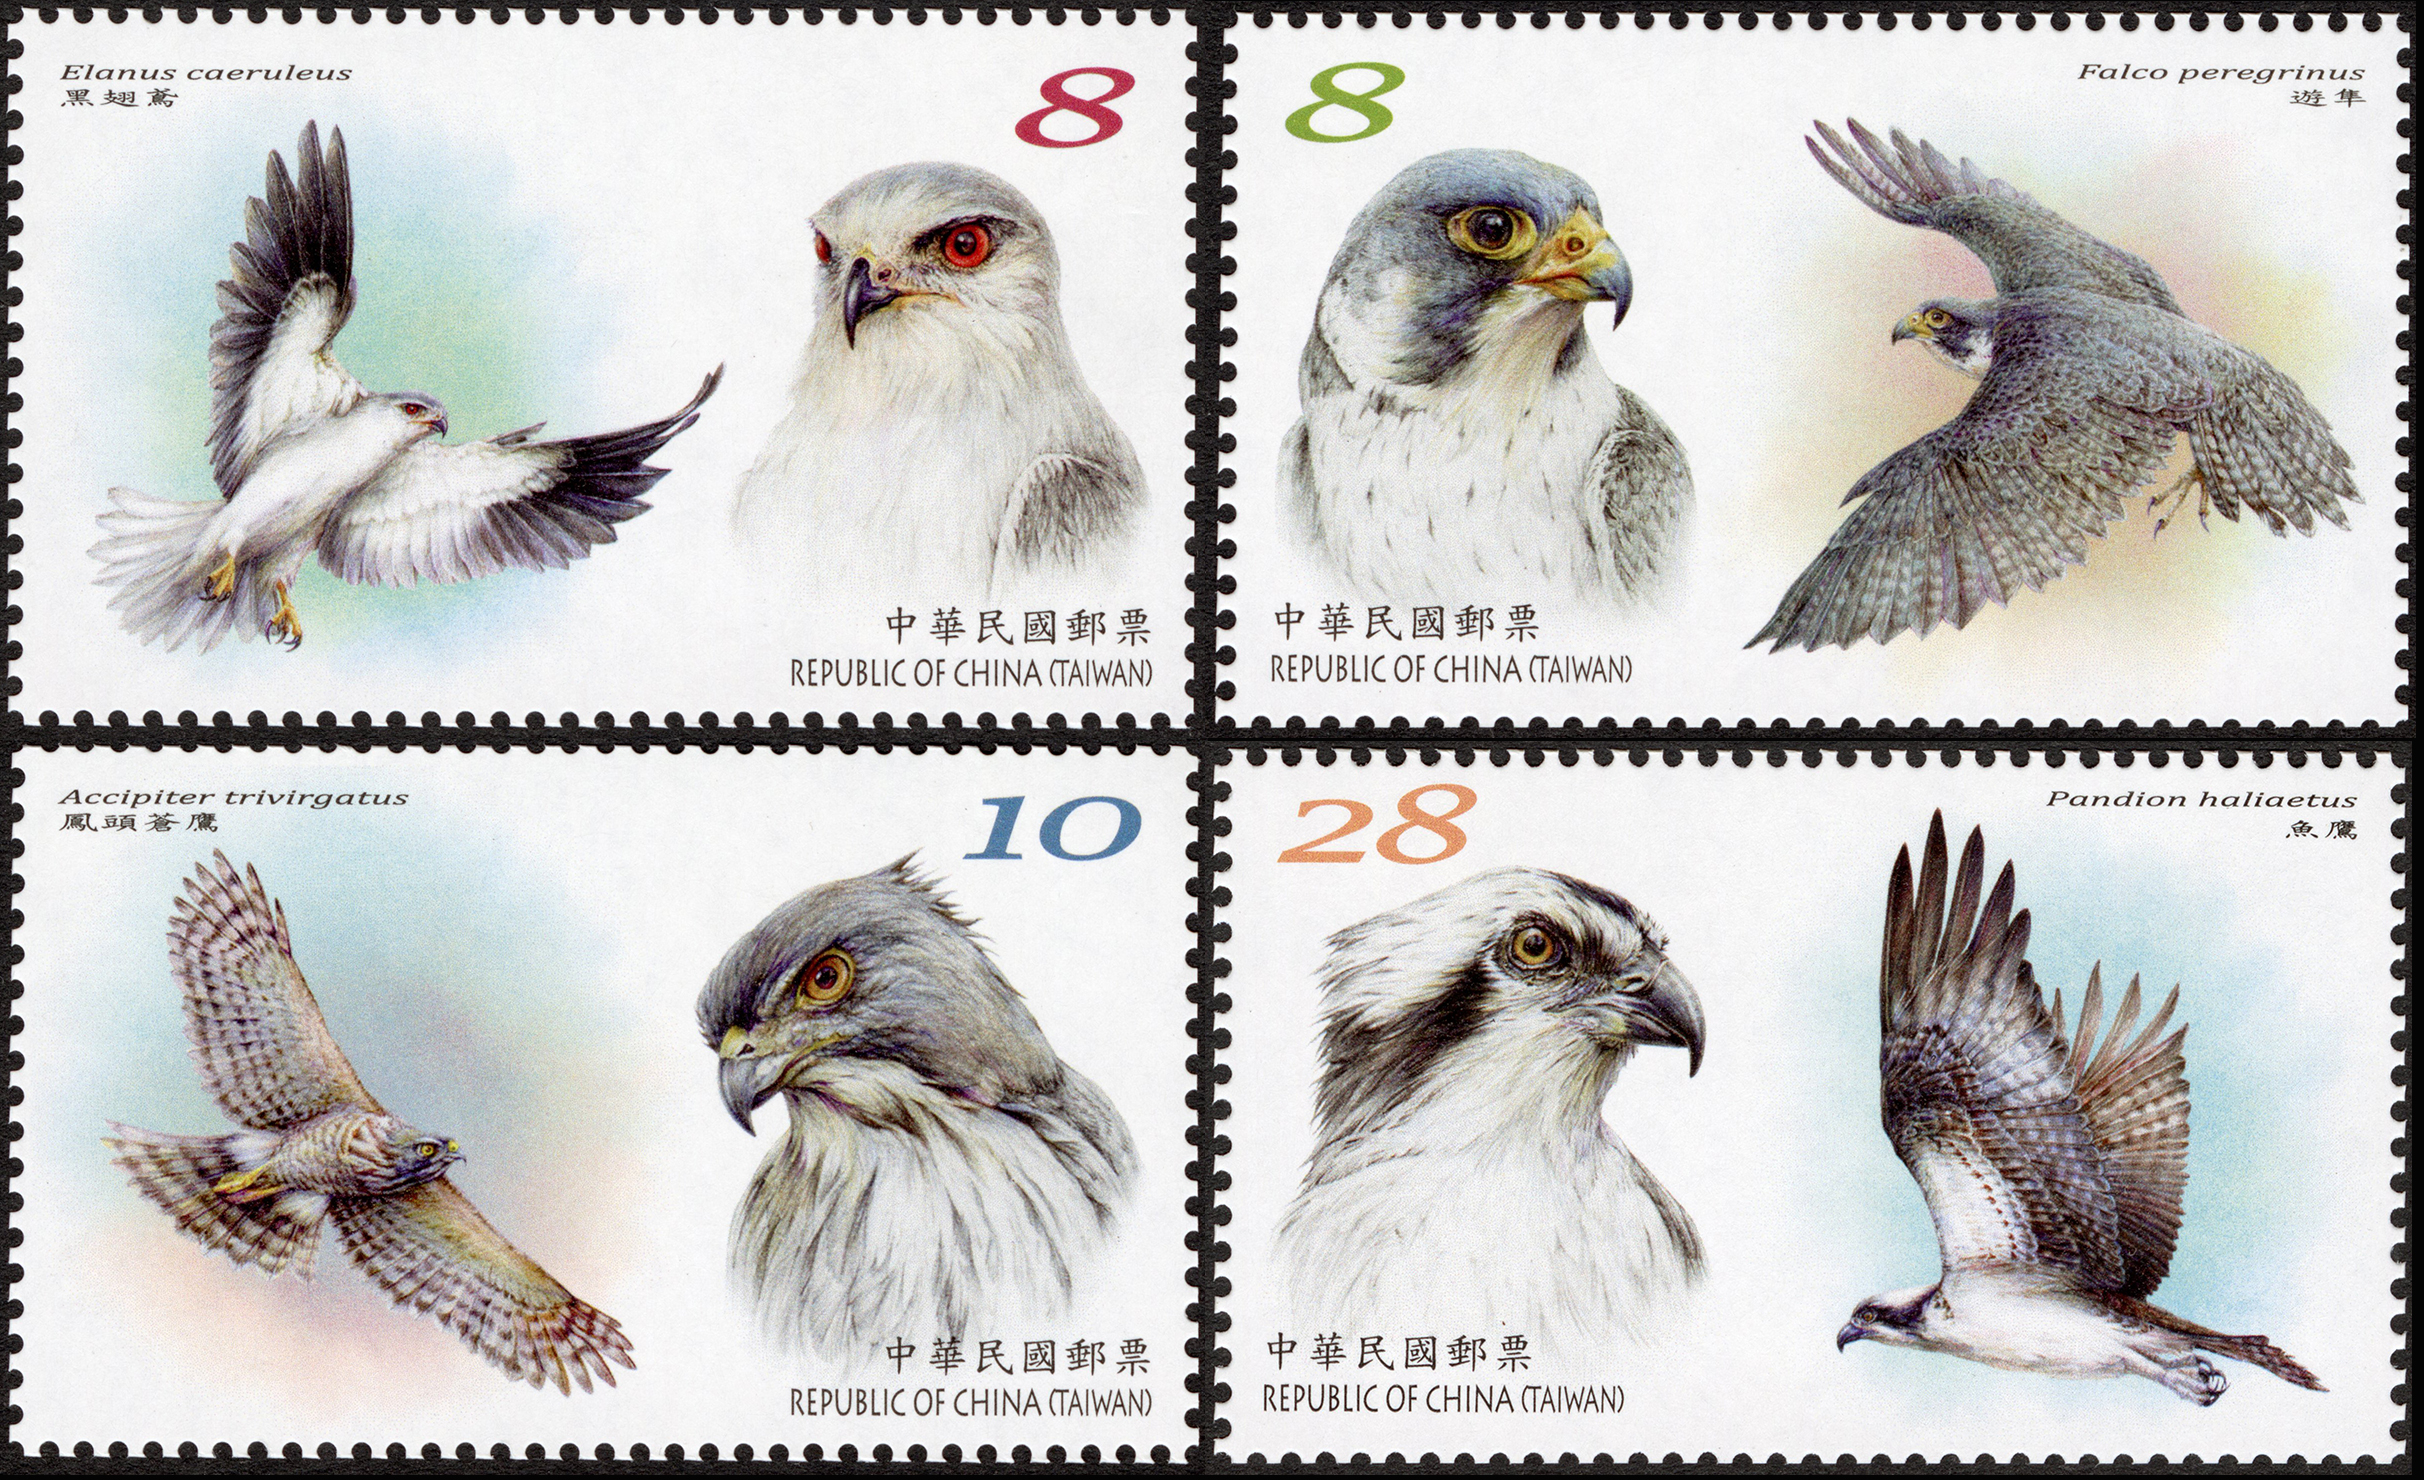 Conservation of Birds Postage Stamps (Issue of 2020)